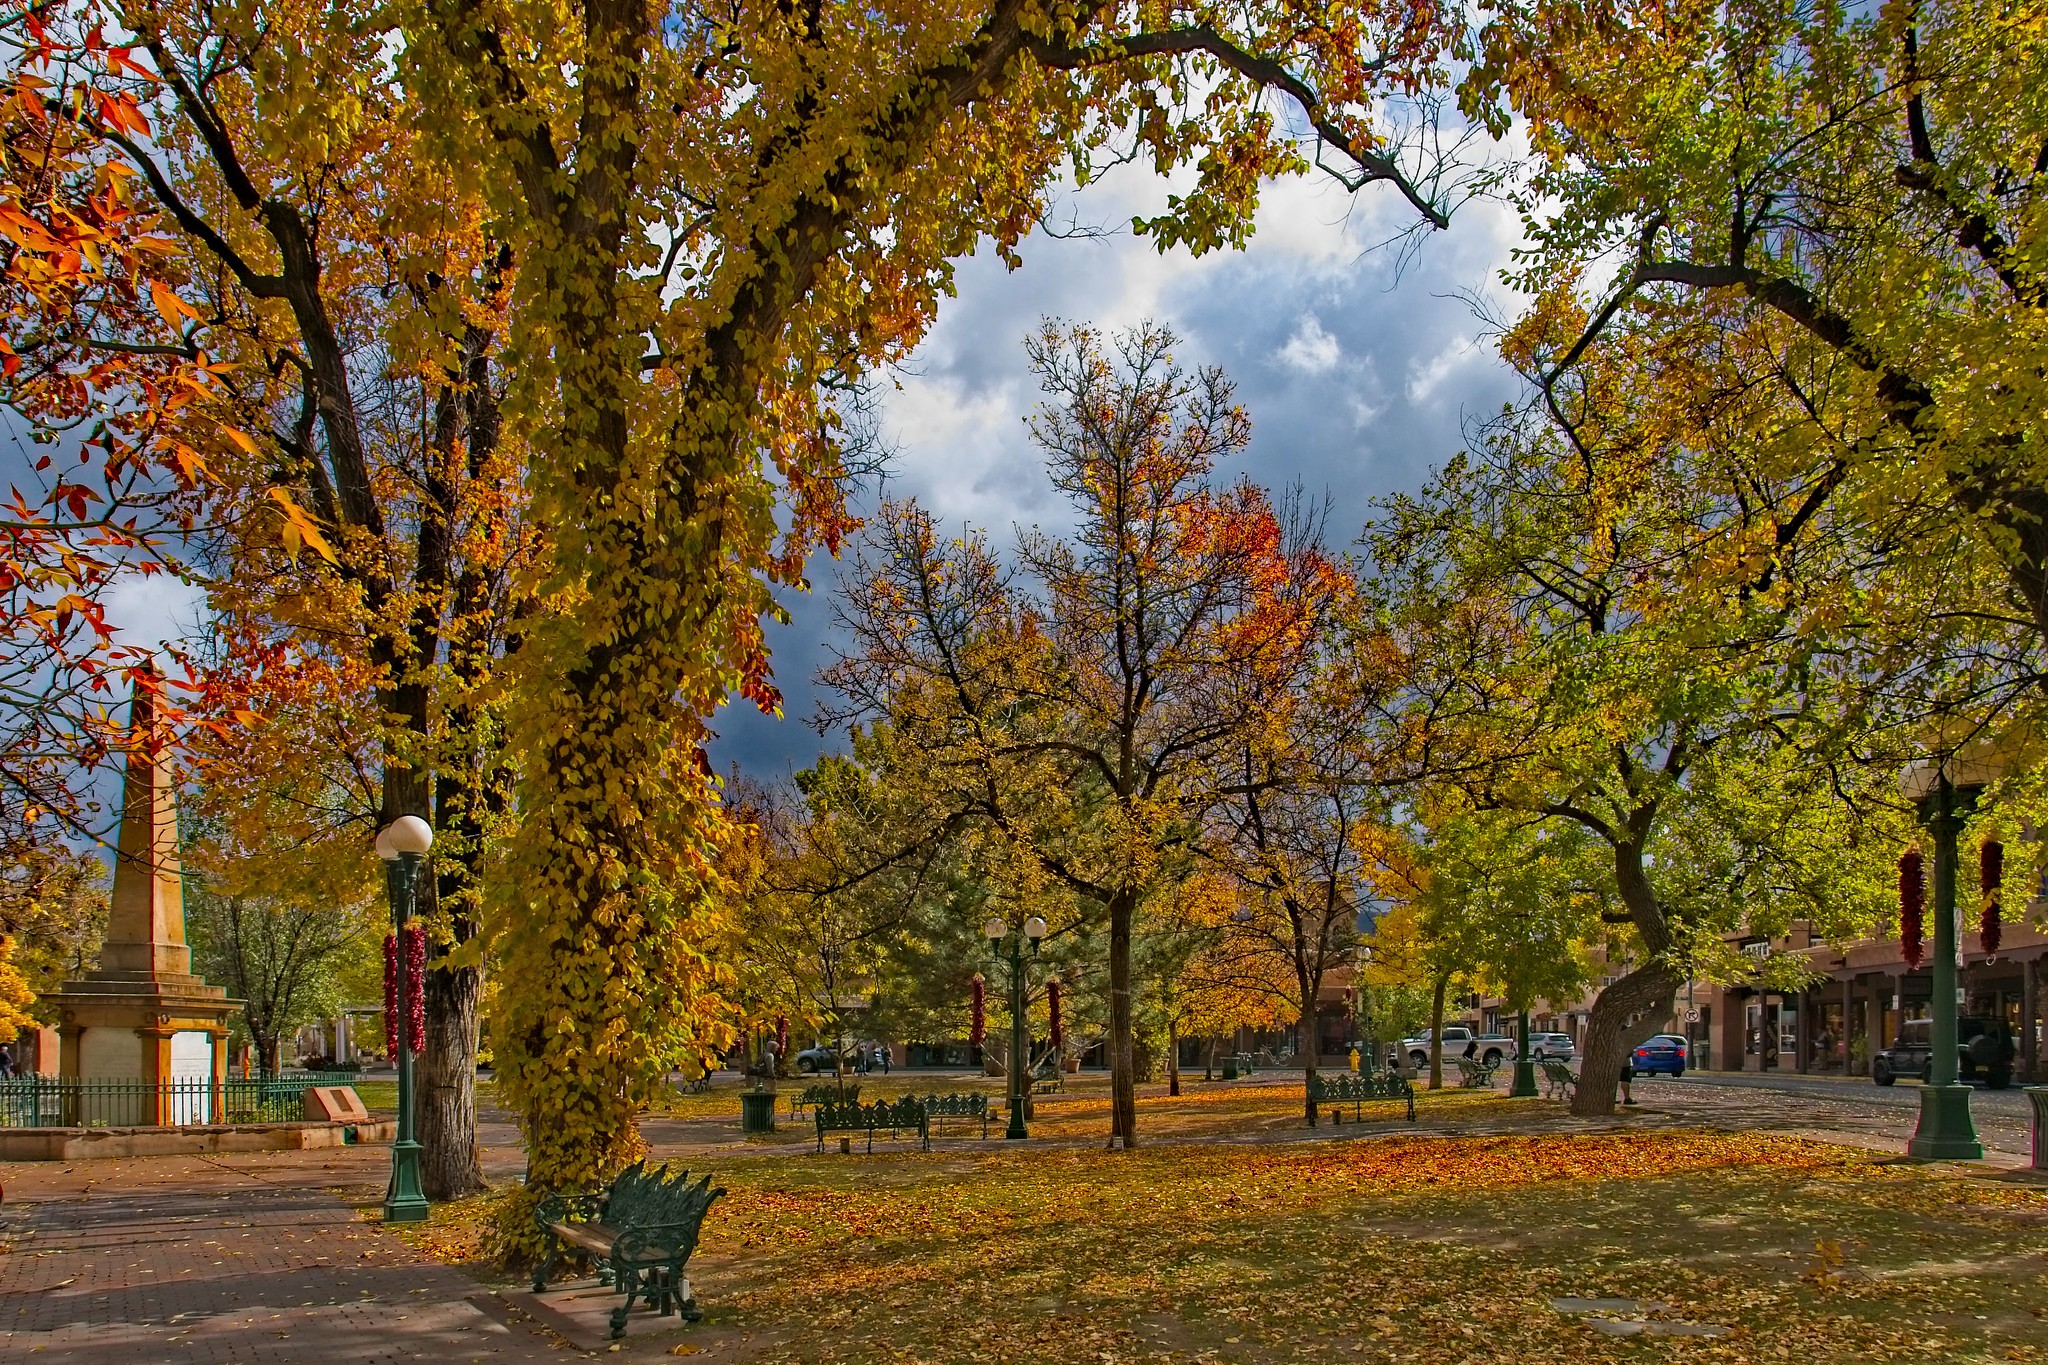 Santa Fe Plaza in the fall.